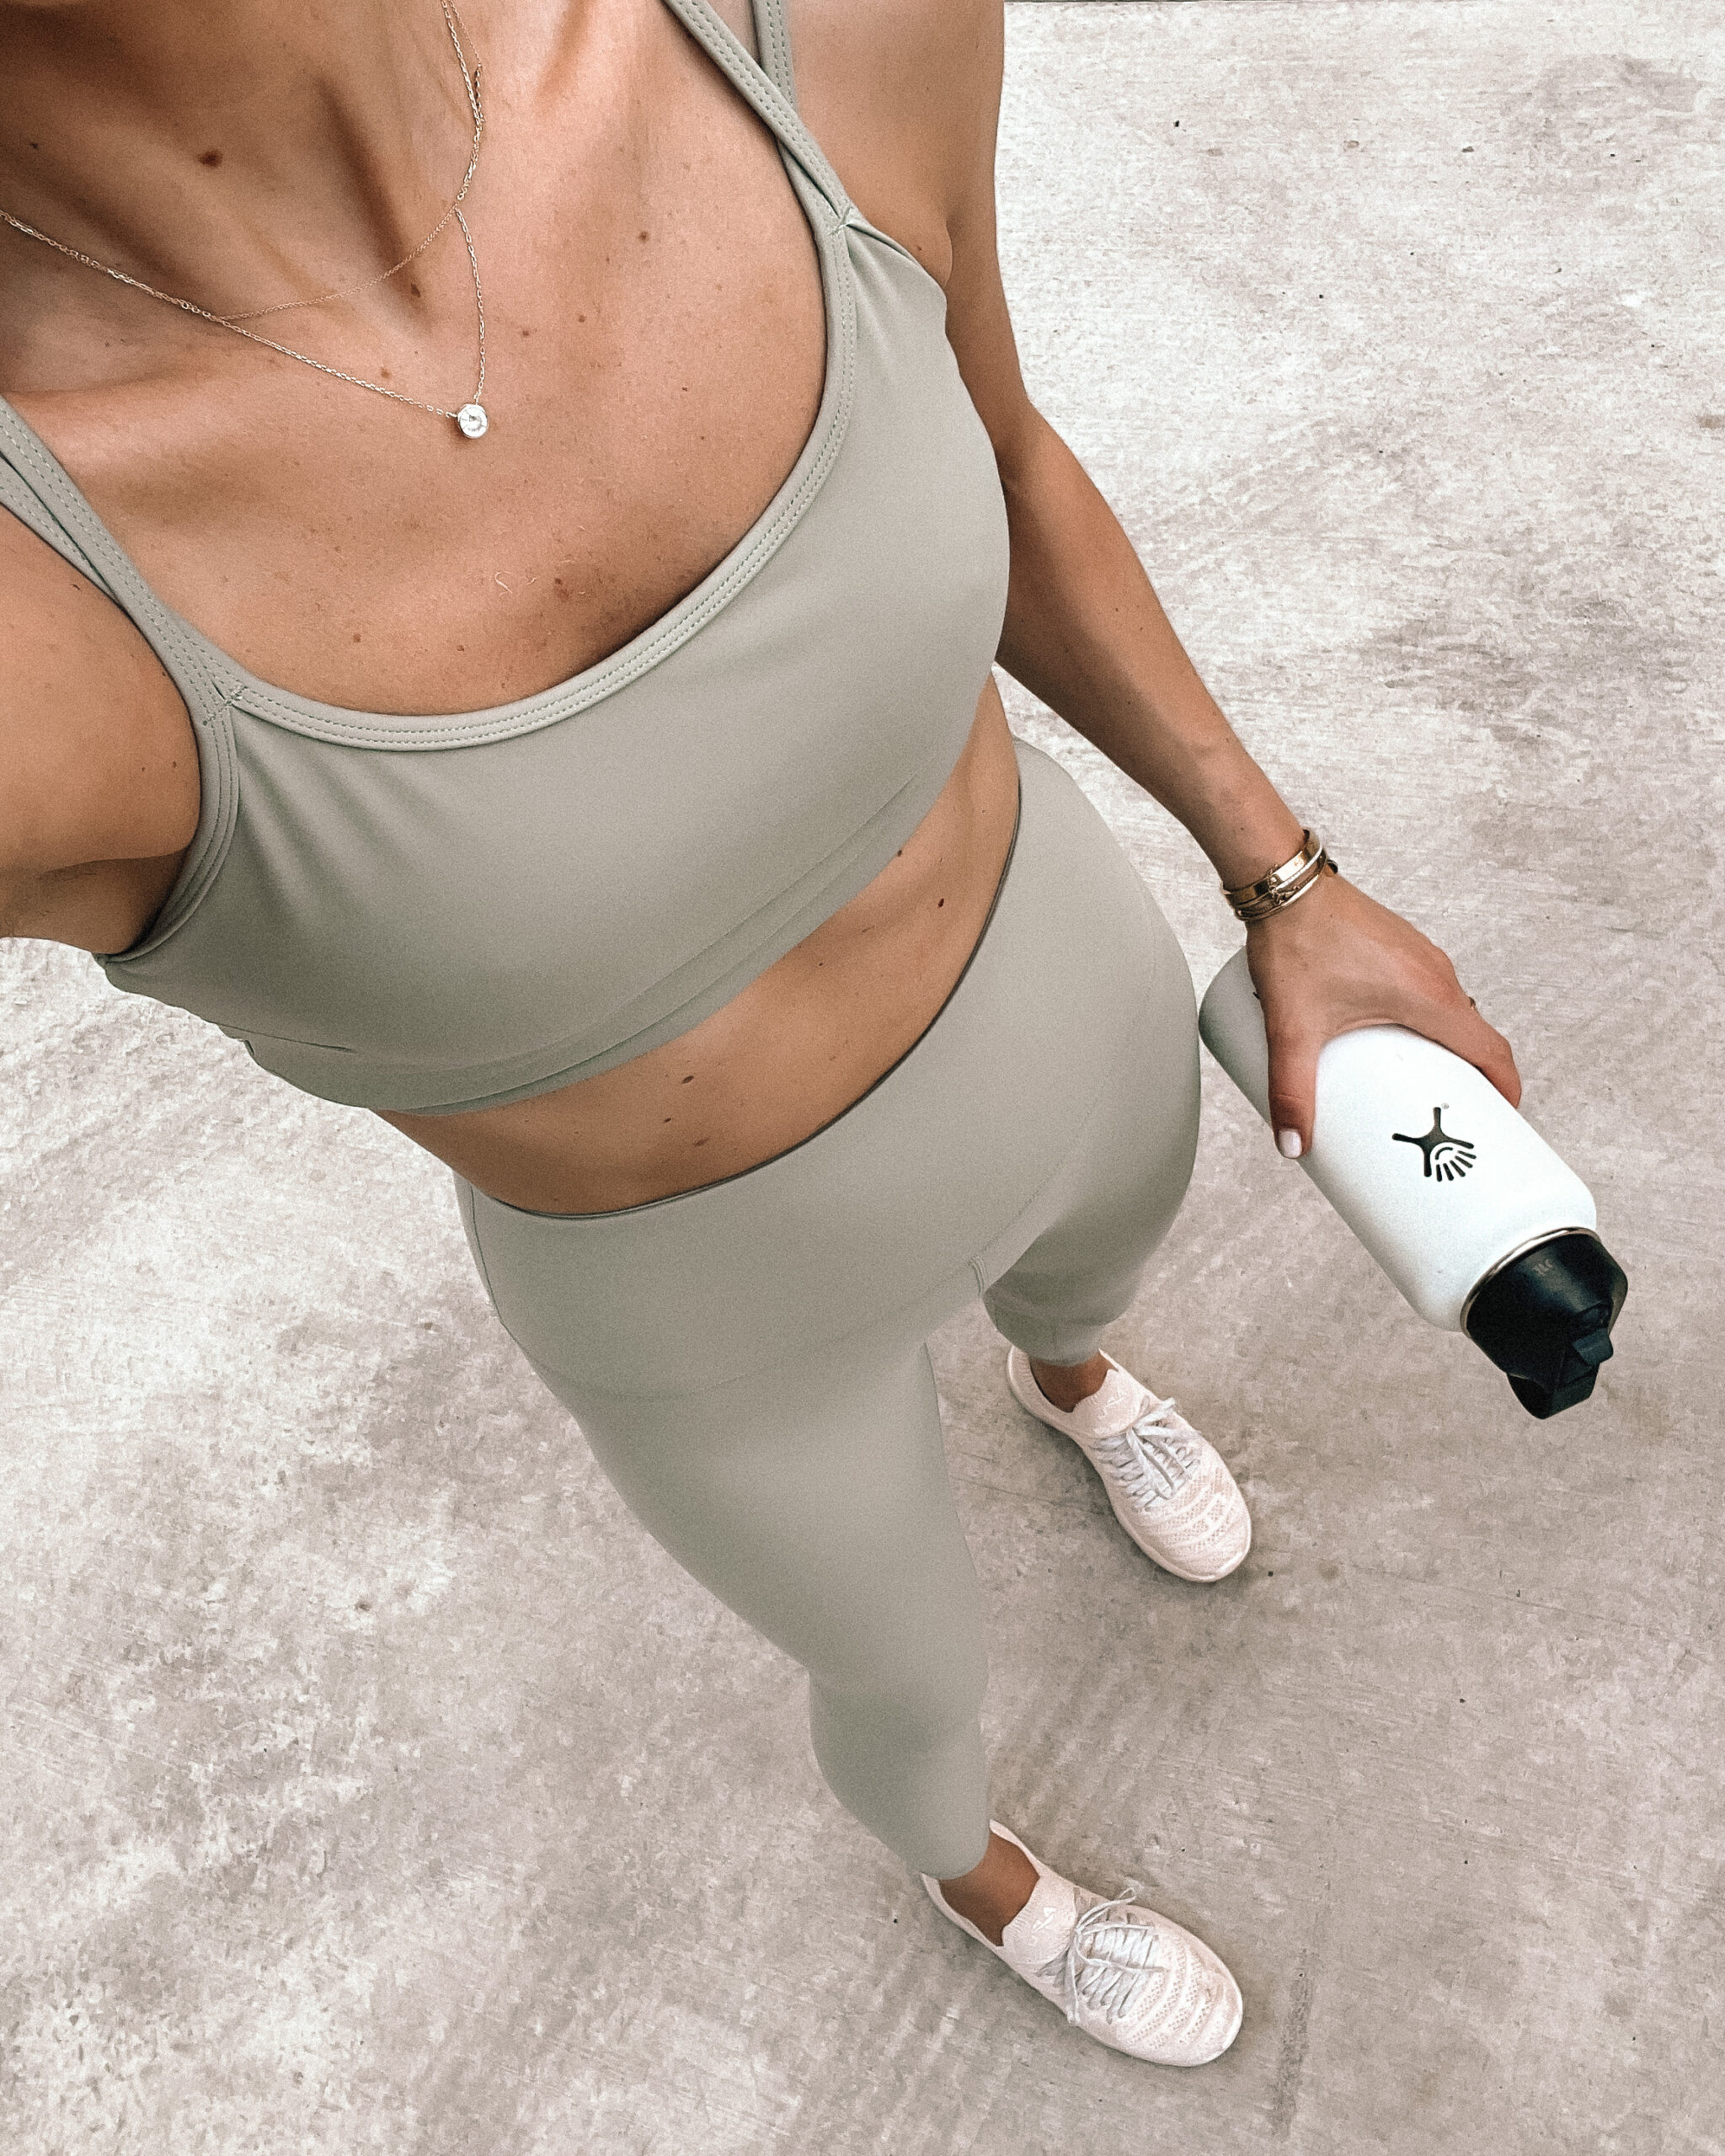 Fashion Jackson Wearing Varley Light Green Strappy Sports Bra Varley Light Green Leggings Blush APL Sneakers White Hydroflask Womens Workout Outfit